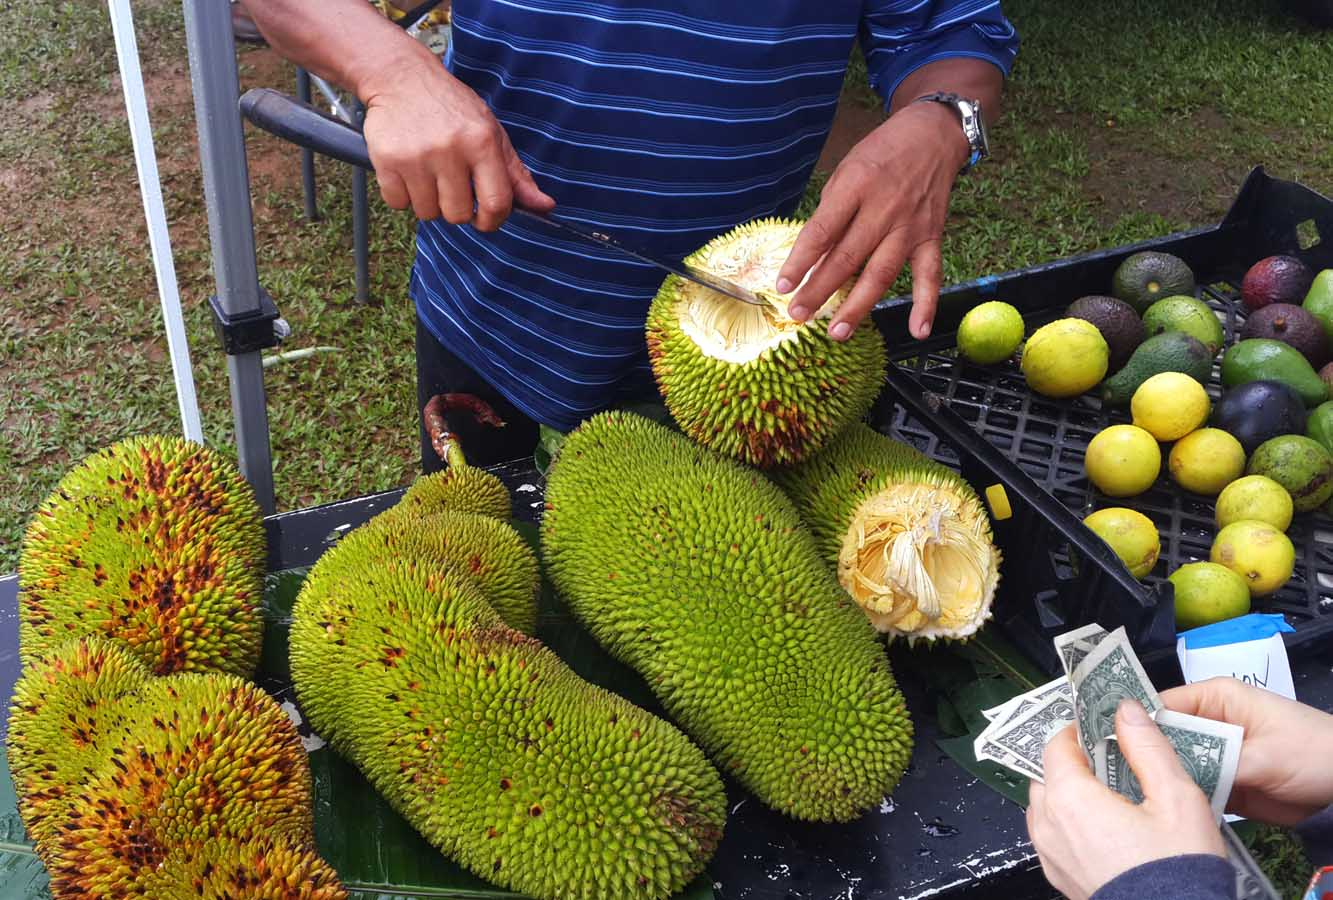 how to cut jackfruit from tree